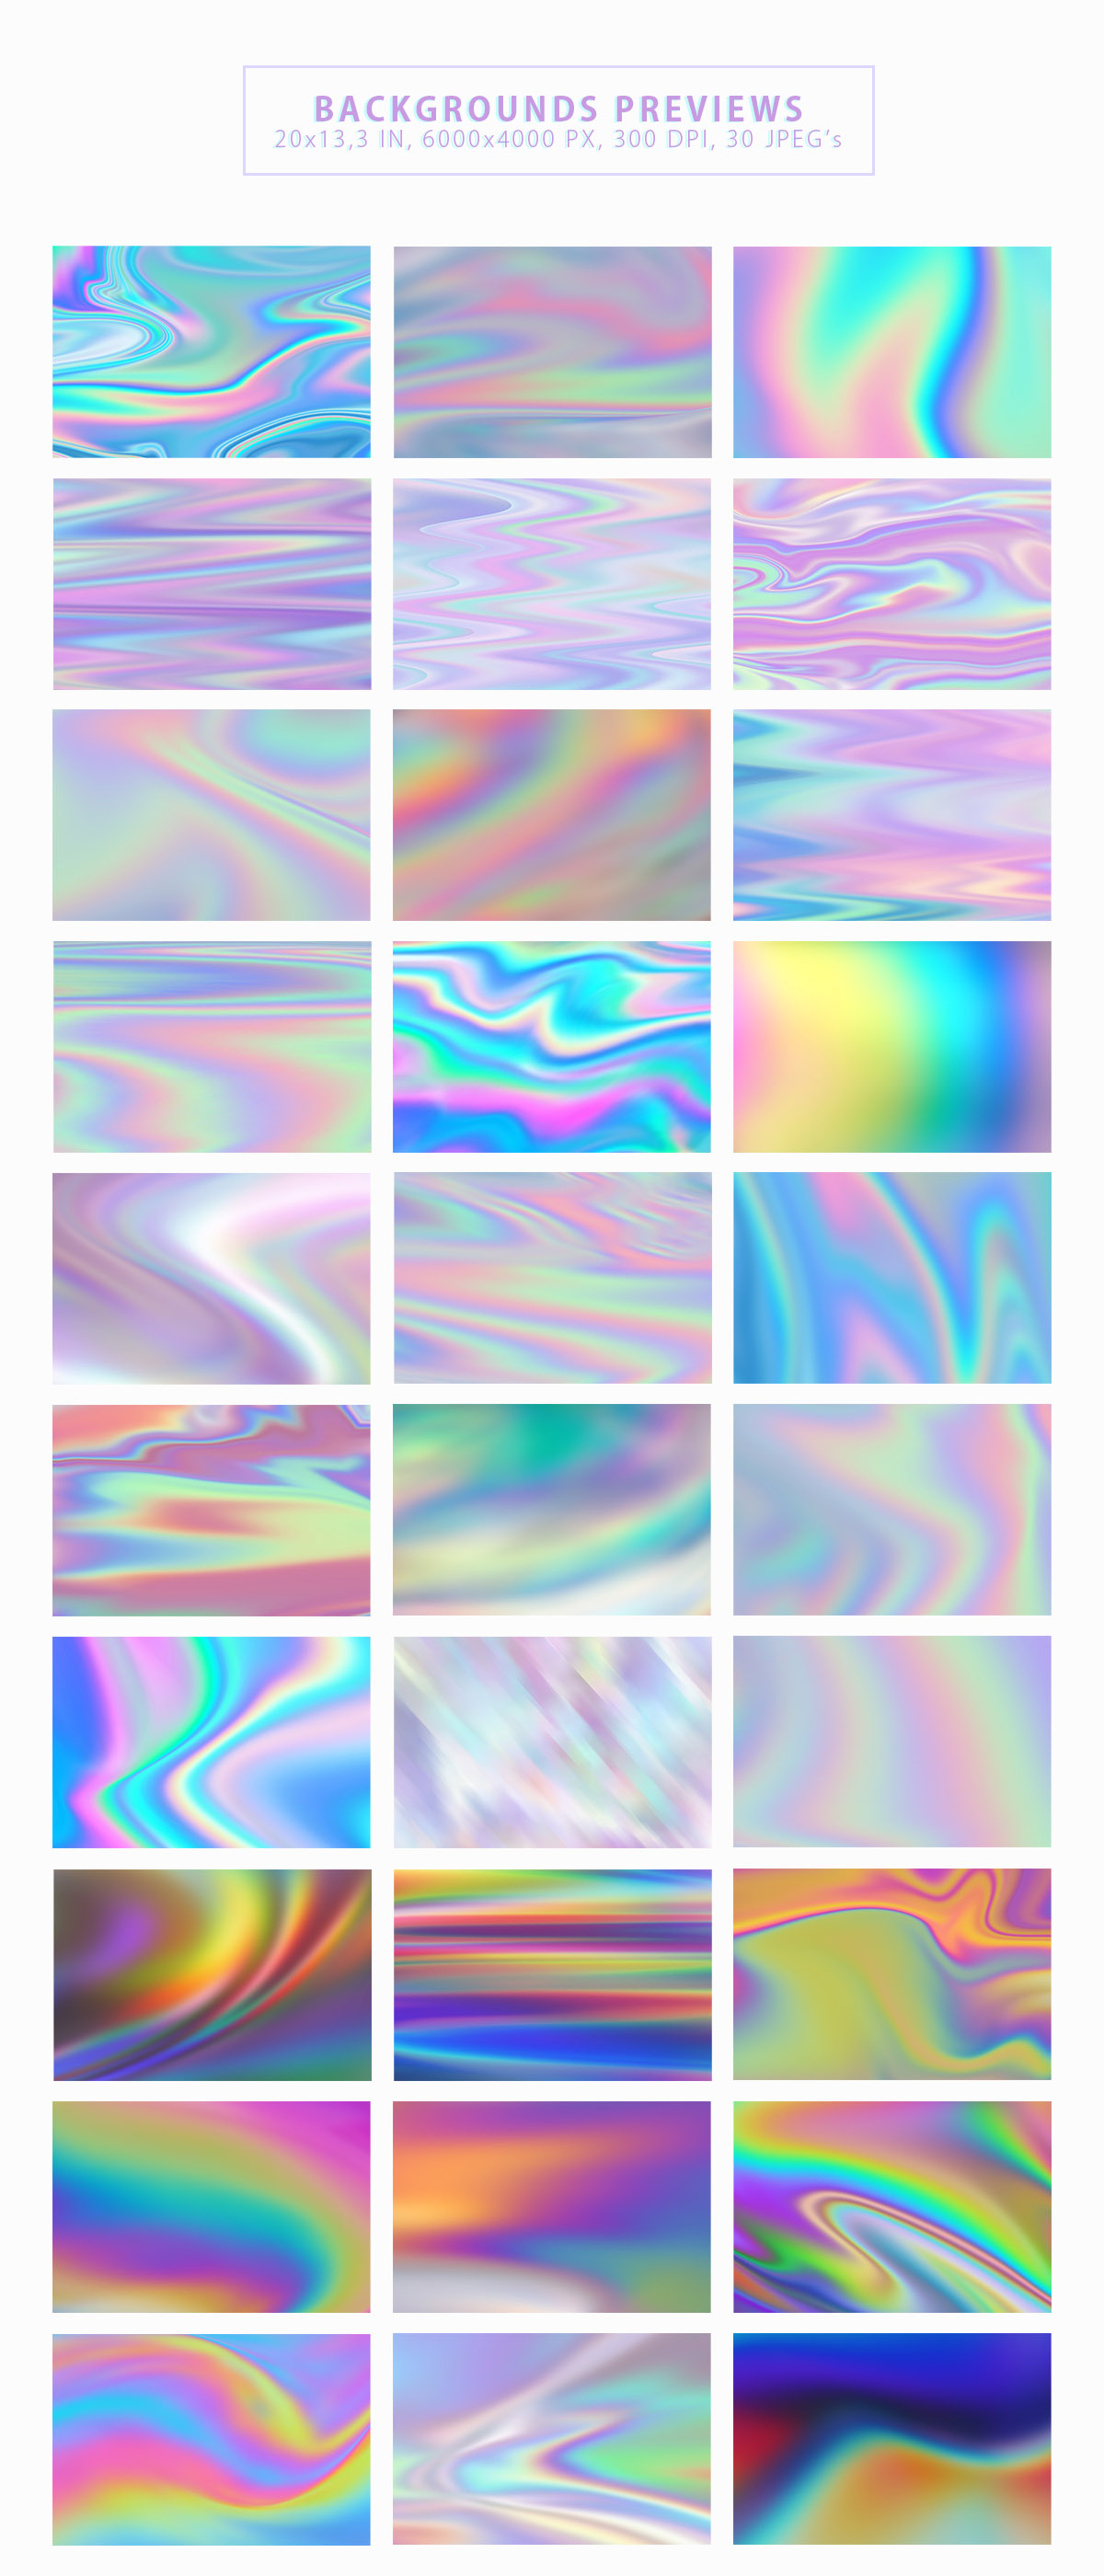 Iridescent Abstract Backgrounds example image 2